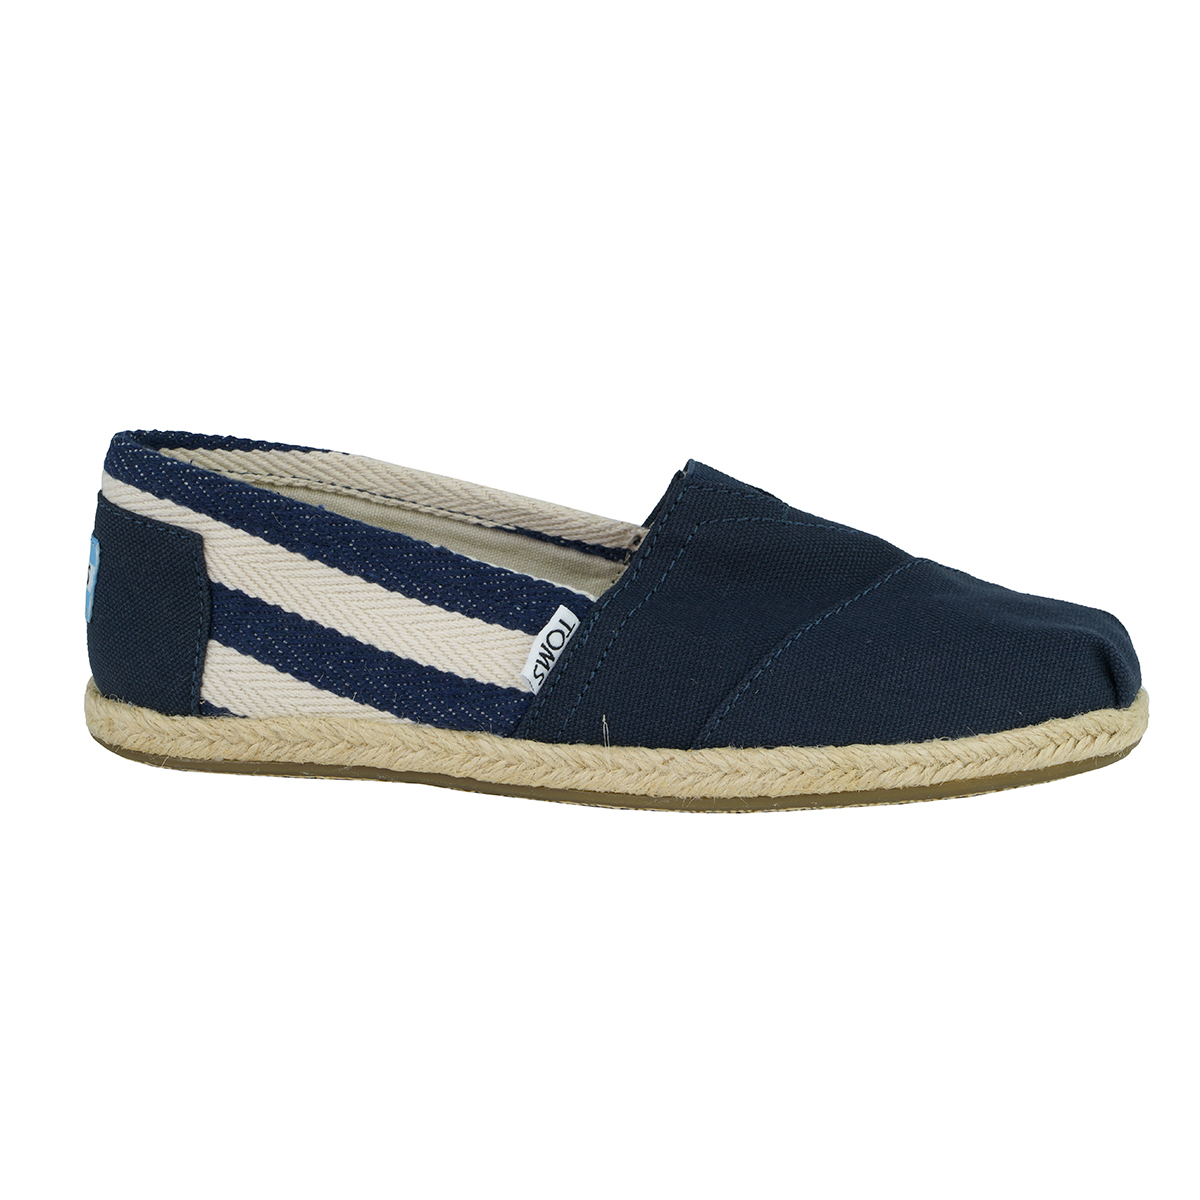 717b23763d3 Details about TOMS Women s Classics Alpargata Slip-on Shoes Navy Stripes 6.5